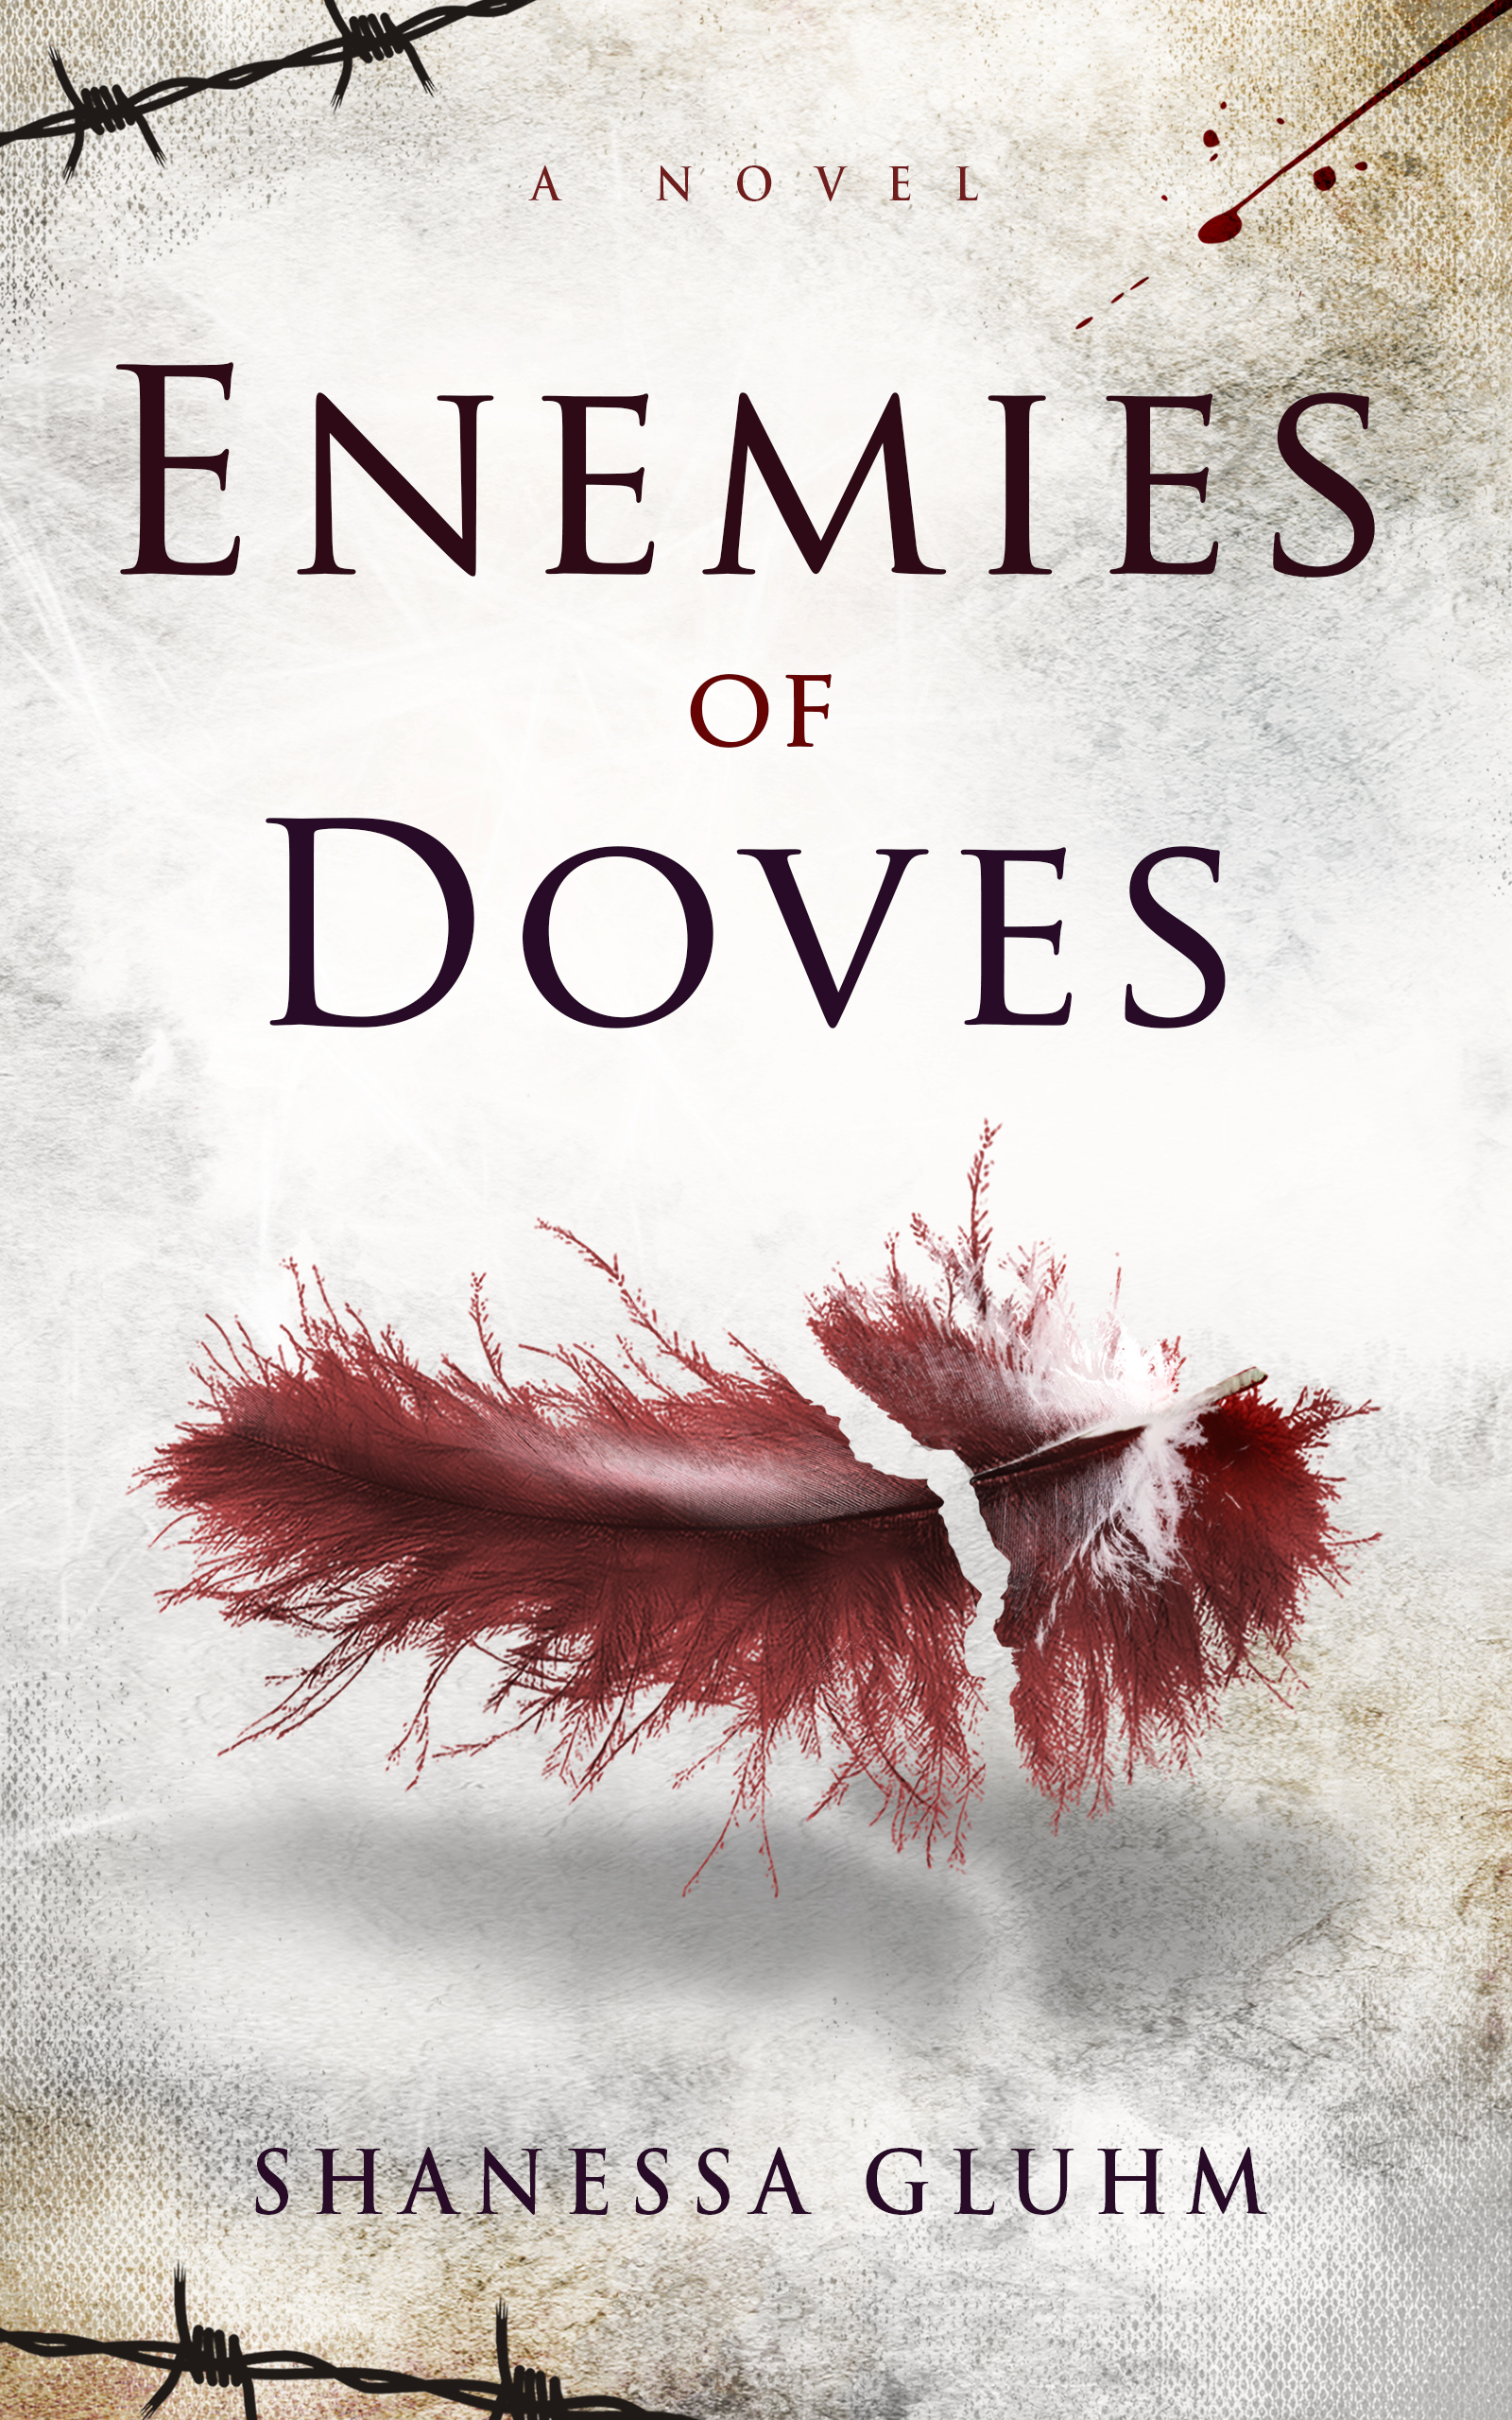 Enemies of Doves by Shanessa Gluhm